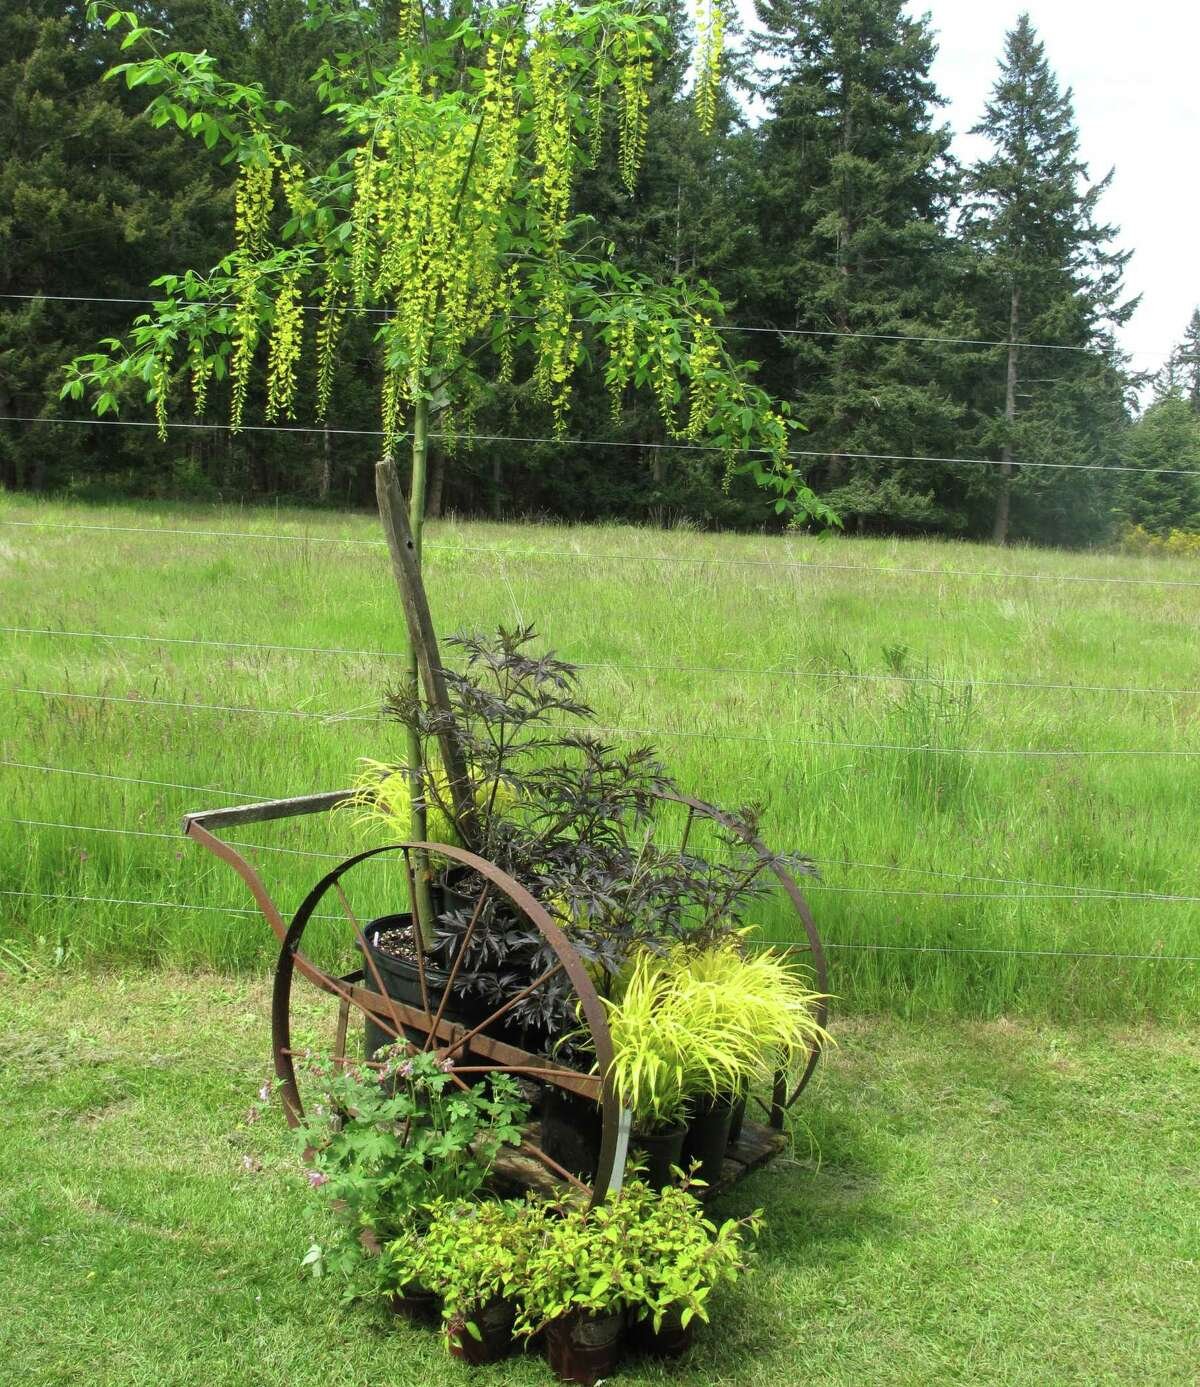 Wheeled devices, like this old cart at Cultus Bay Nursery and Garden near Clinton, Wash., serve as attractive plant beds that can be moved across the country or simply pushed into a sunny corner of the patio.